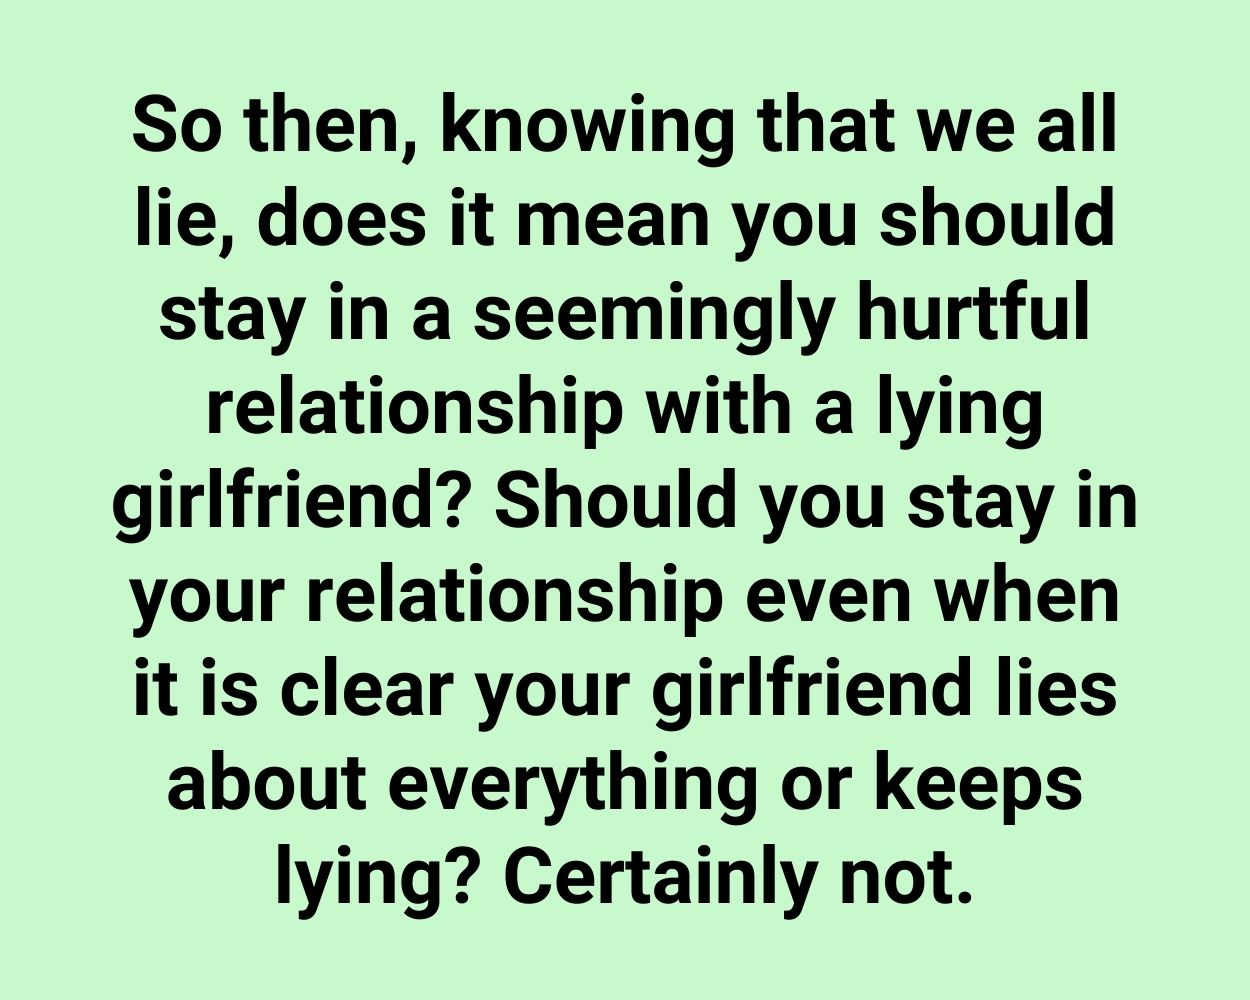 So then, knowing that we all lie, does it mean you should stay in a seemingly hurtful relationship with a lying girlfriend? Should you stay in your relationship even when it is clear your girlfriend lies about everything or keeps lying? Certainly not.